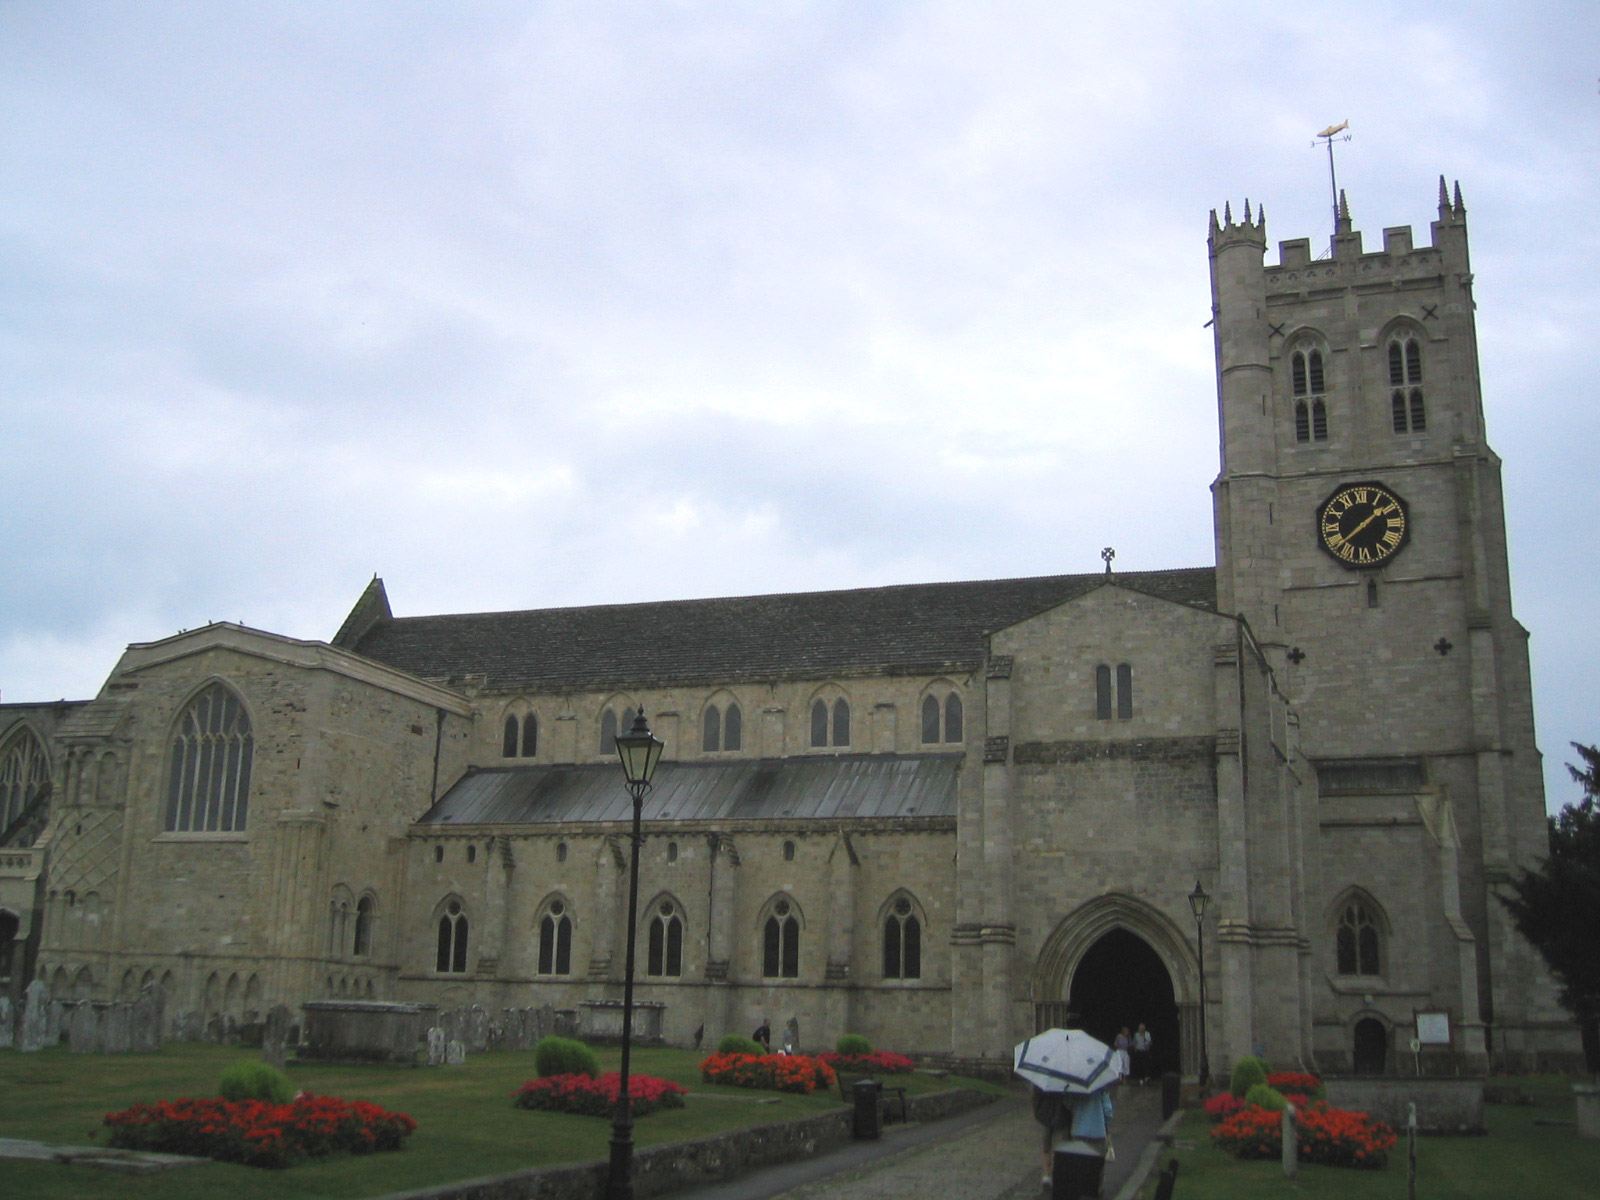 http://upload.wikimedia.org/wikipedia/commons/8/85/ChristchurchPriory.jpg